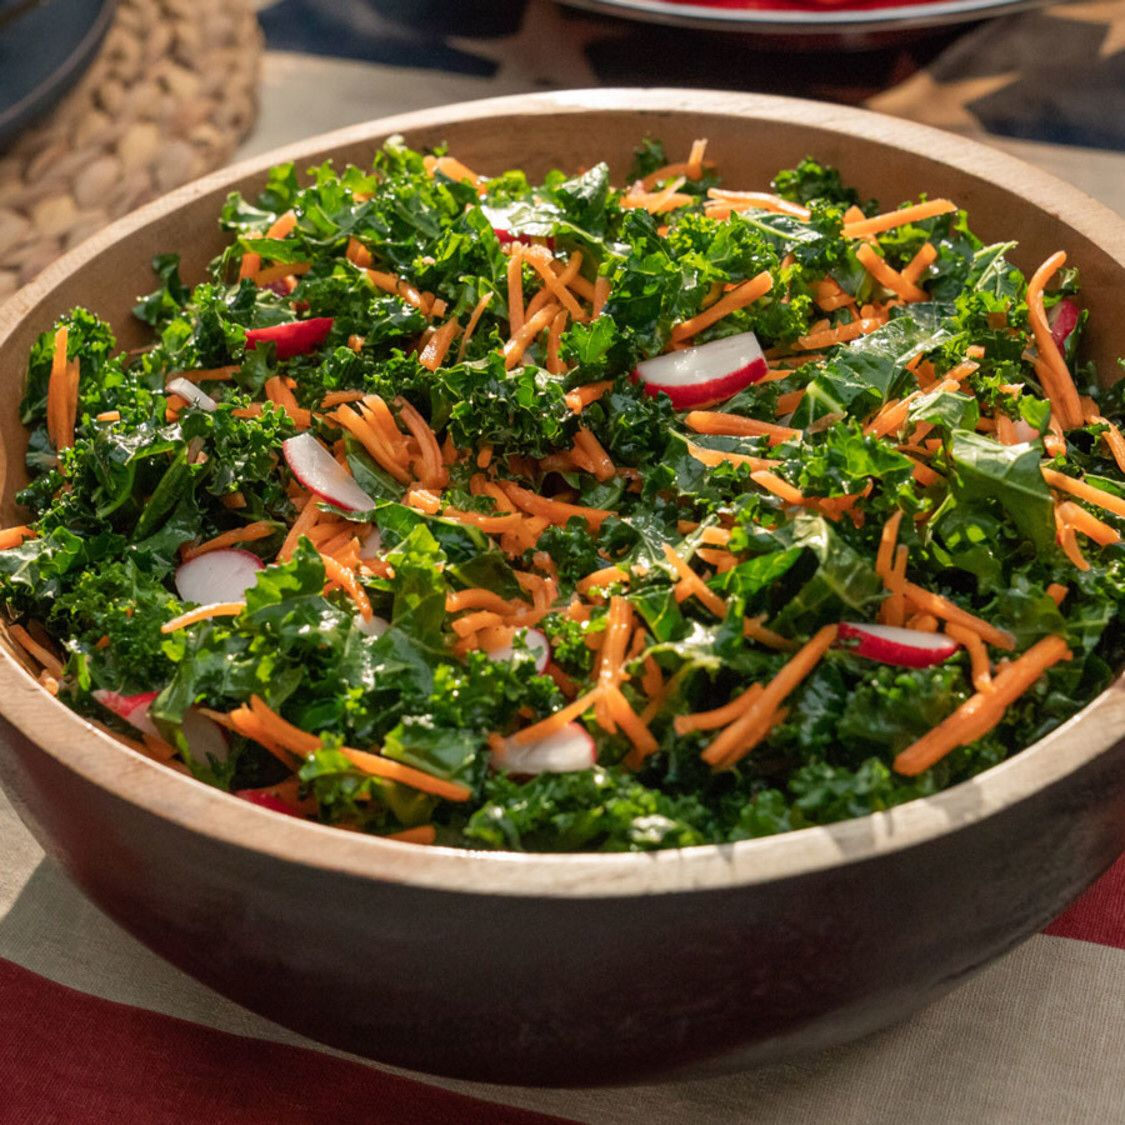 Kale And Carrot Slaw Recipe In 2020 Slaw Recipes Food Network Recipes Carrot Slaw